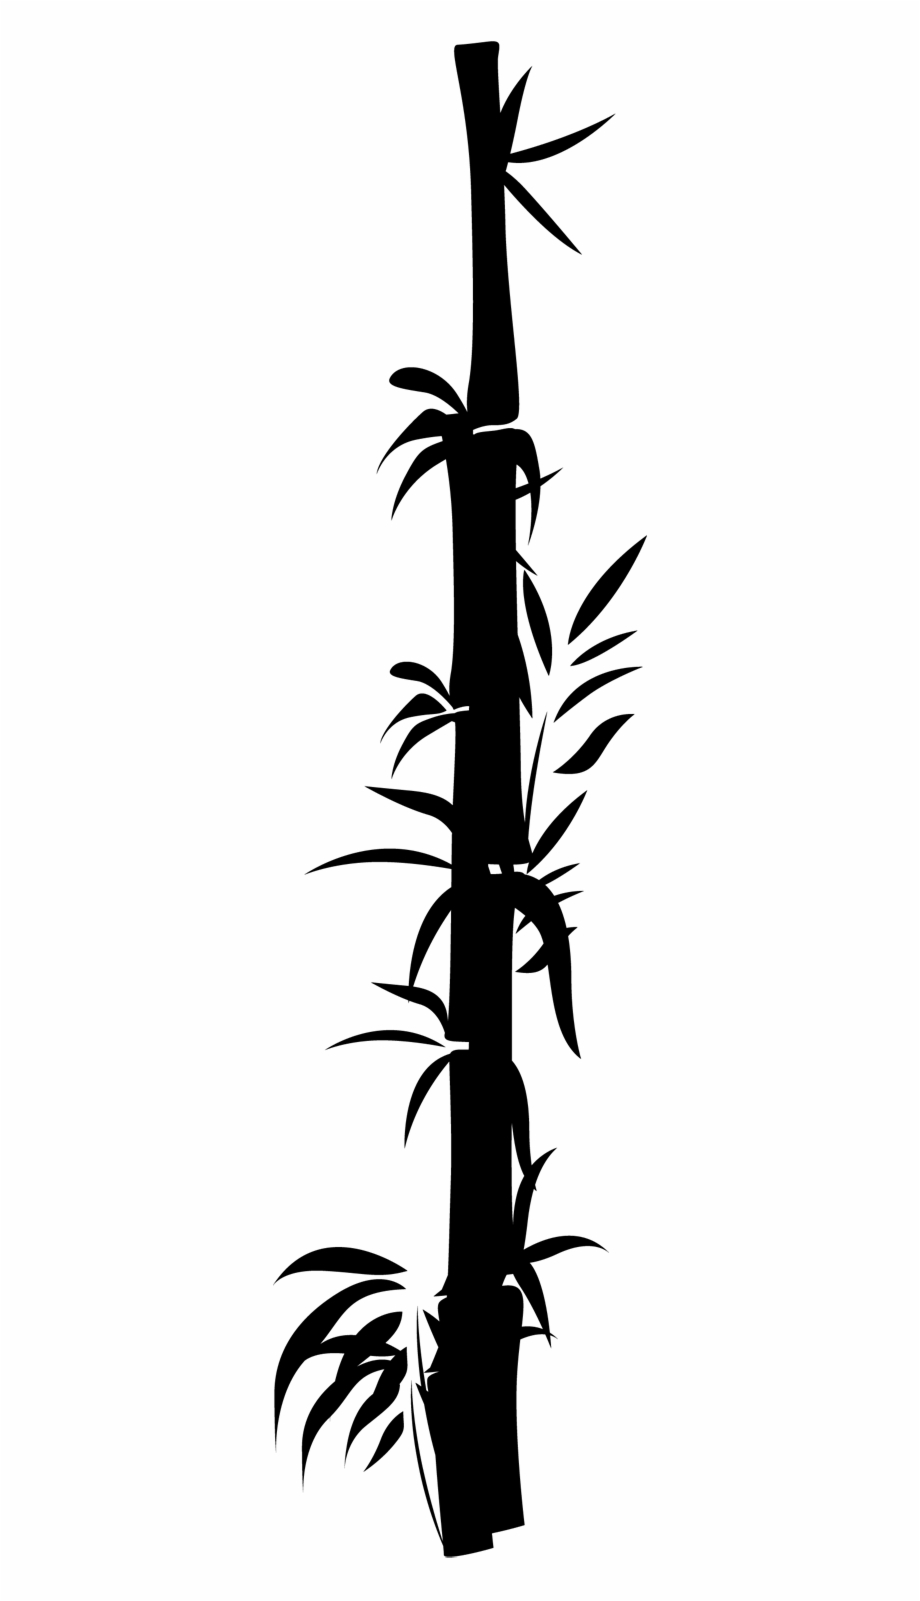 Bamboo stick bamboo clipart black and white clipart library library Oriental Bamboo Decal - Black And White Bamboo Border Design Free ... clipart library library